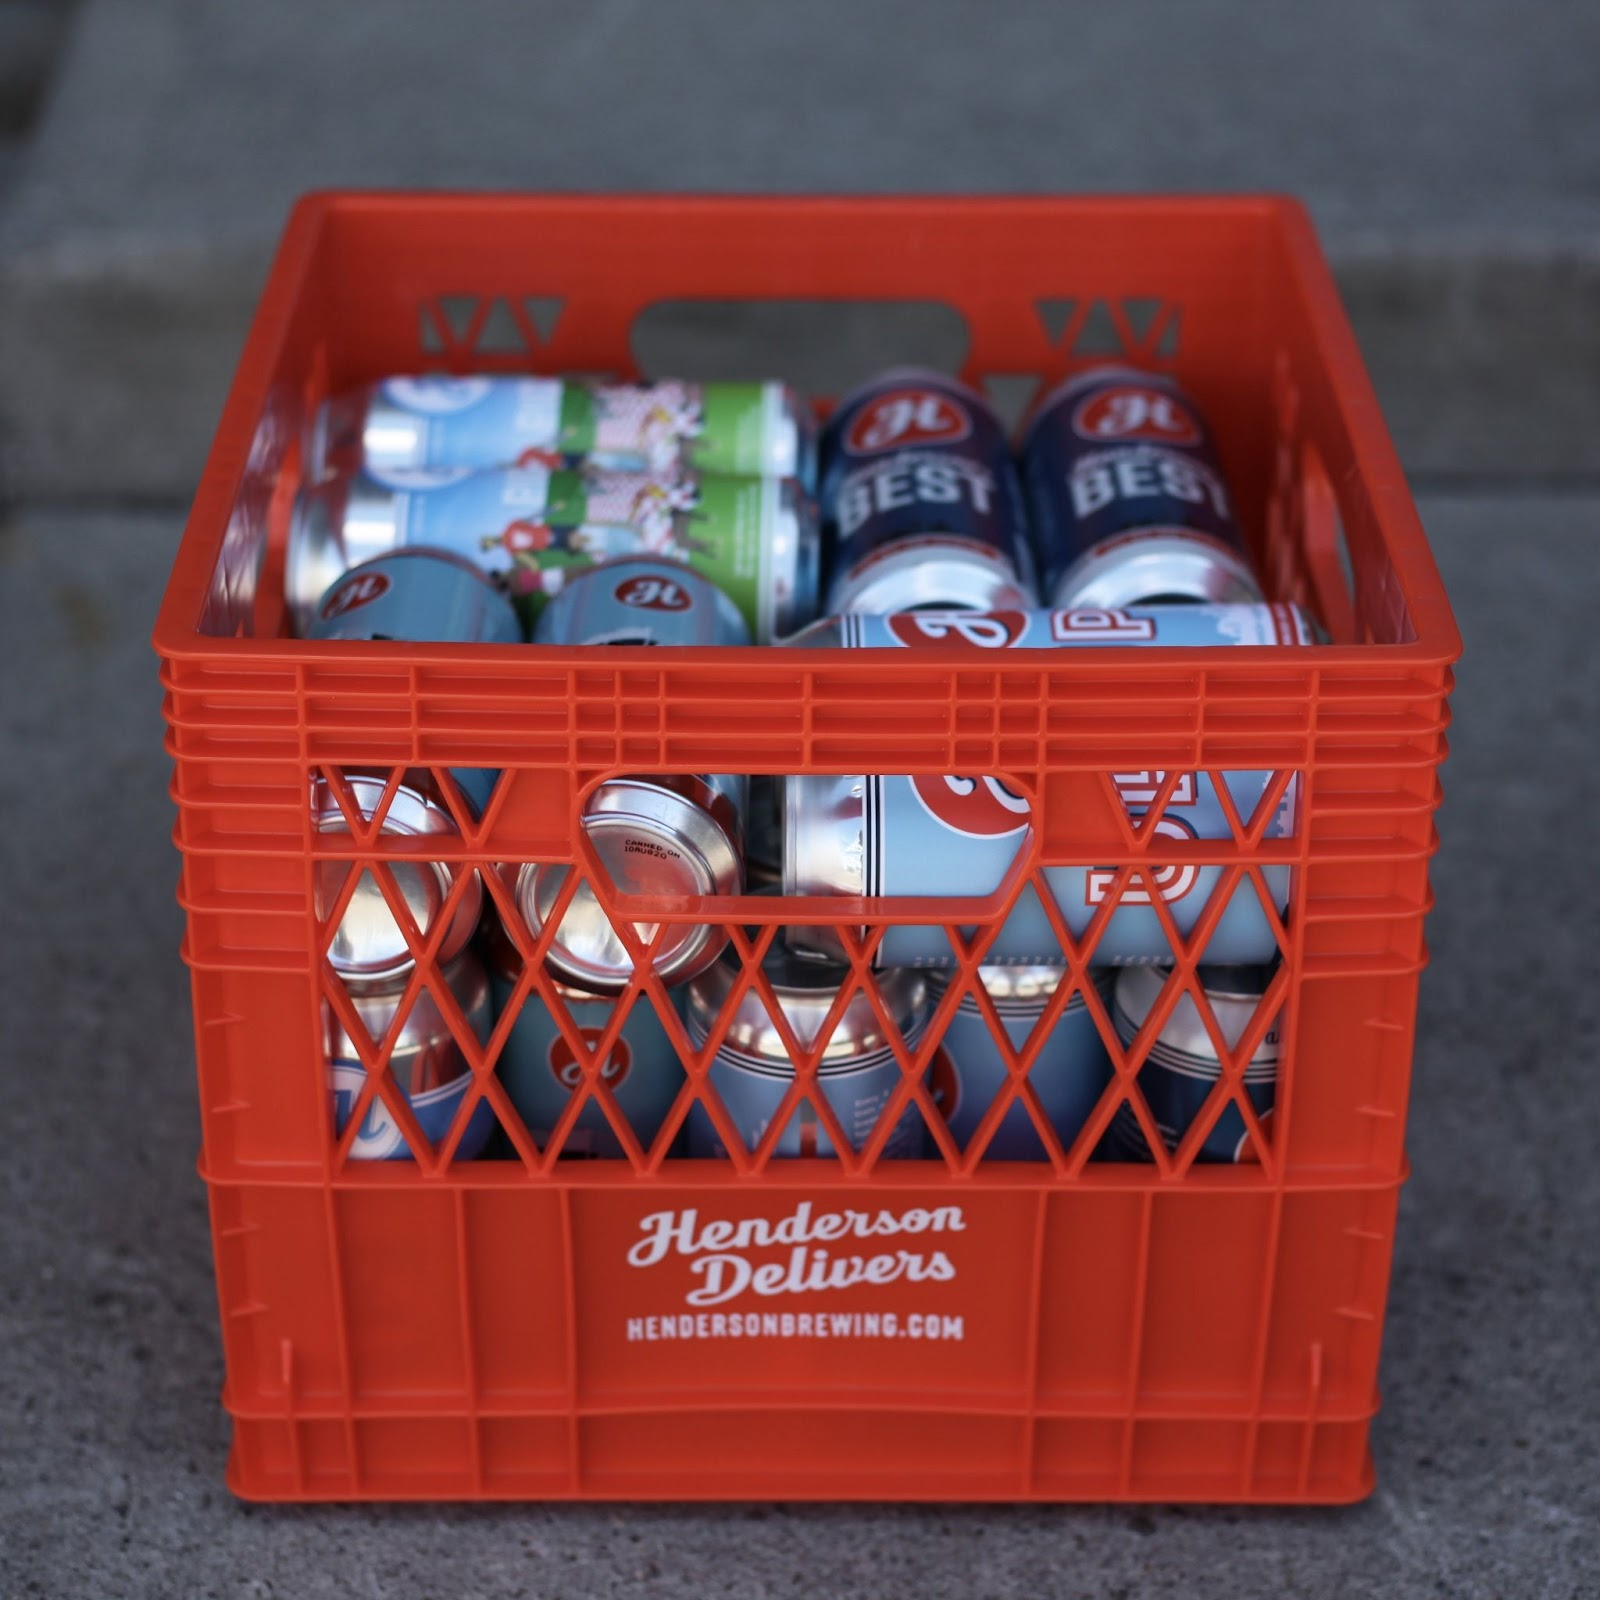 A bright orange milk crate that says 'Henderson Delivers' on it, filled with cans of delicious Henderson beer